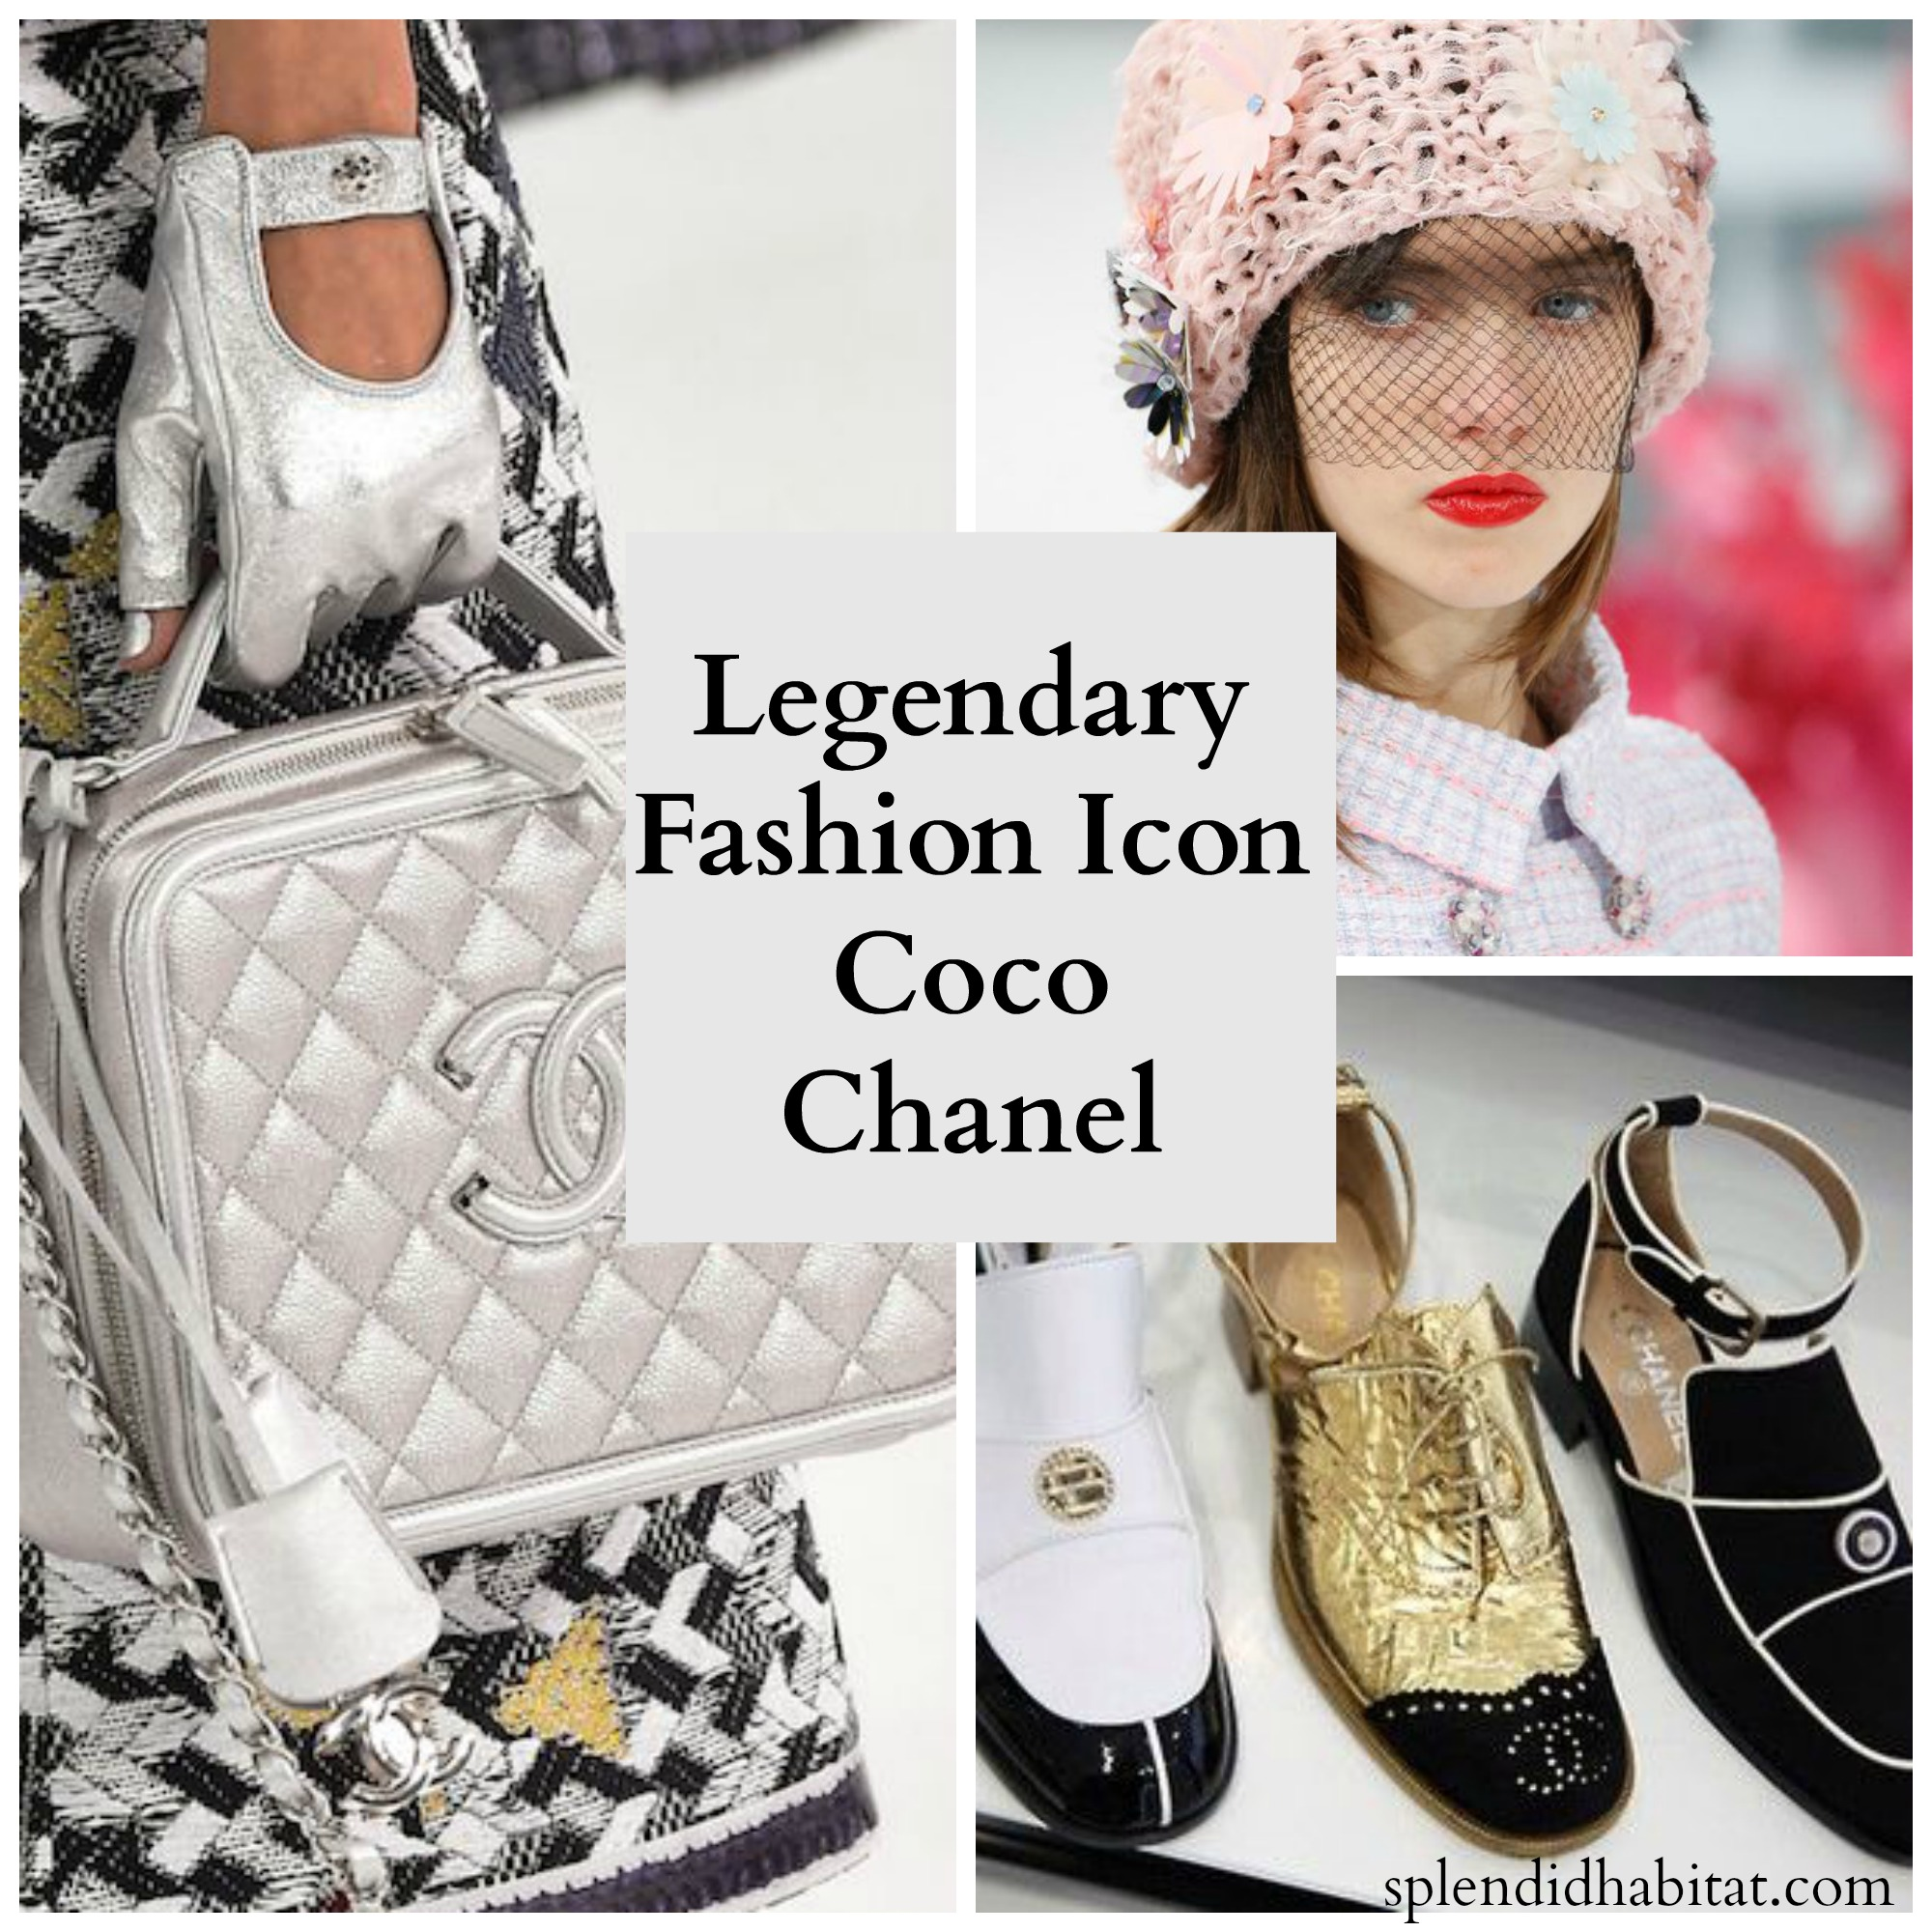 style icons why coco chanel is the undisputed grande dame of fashion splendid habitat. Black Bedroom Furniture Sets. Home Design Ideas